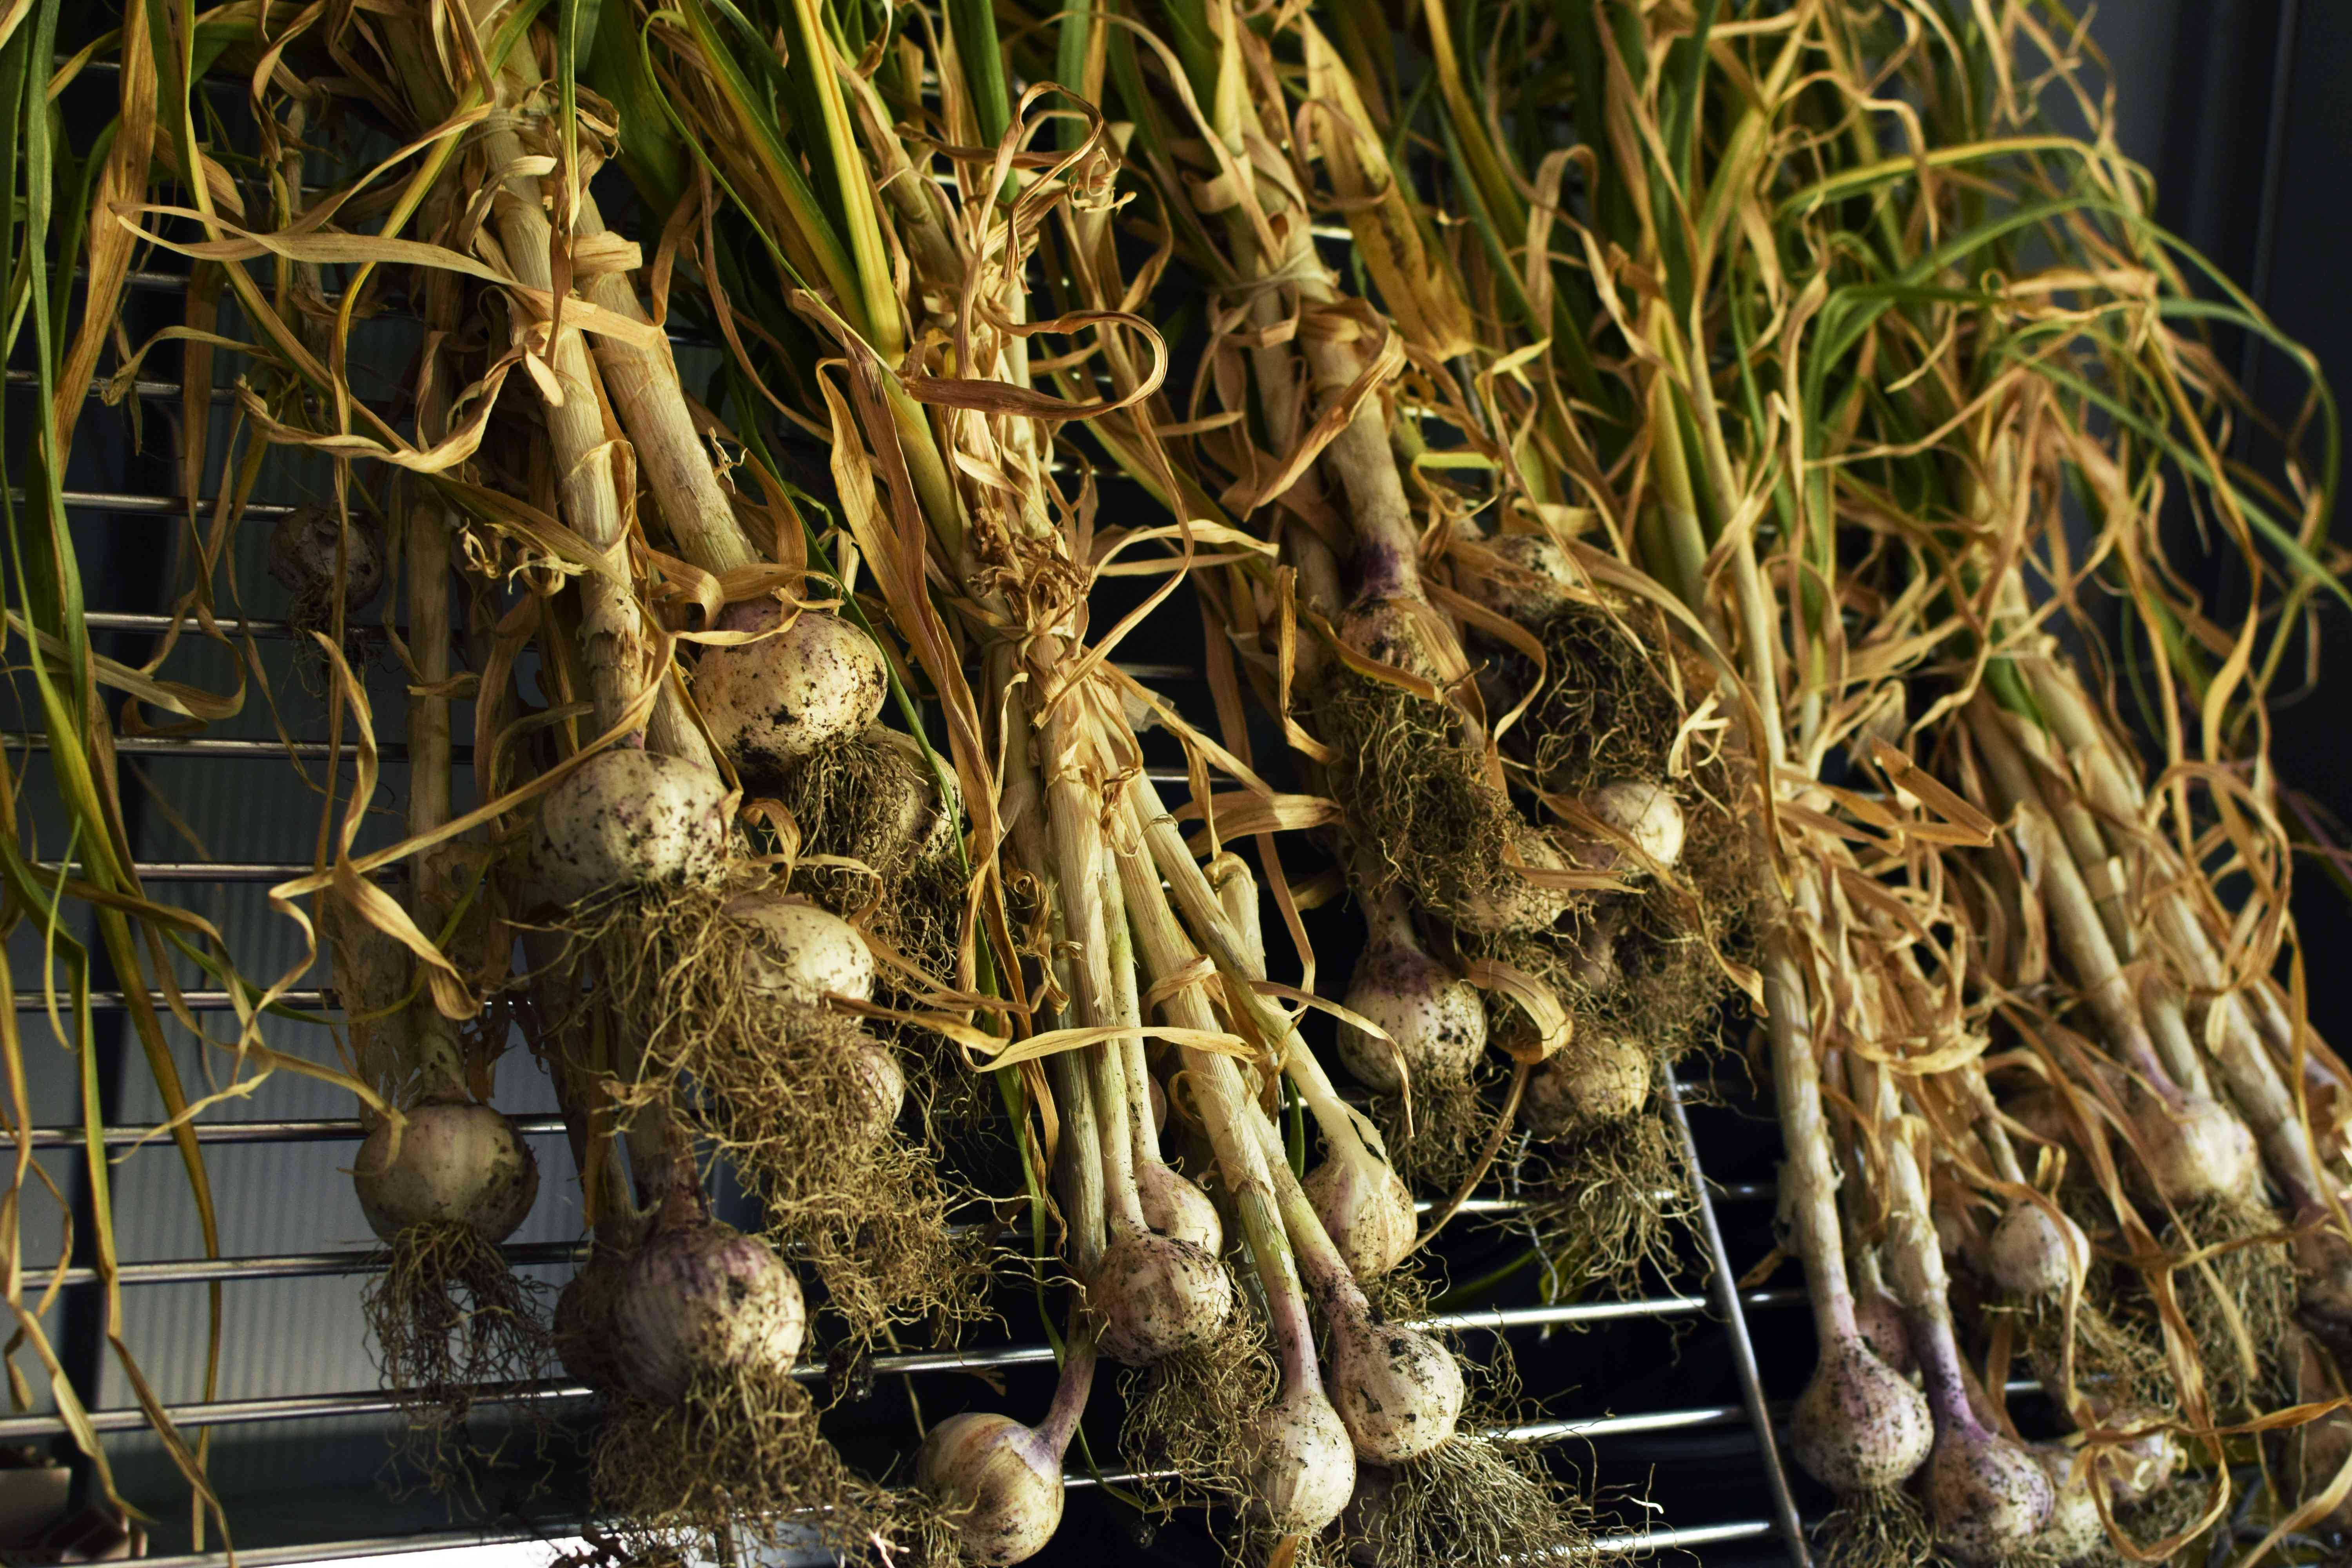 Harvested garlic plants cured on metal rack with stalks and roots